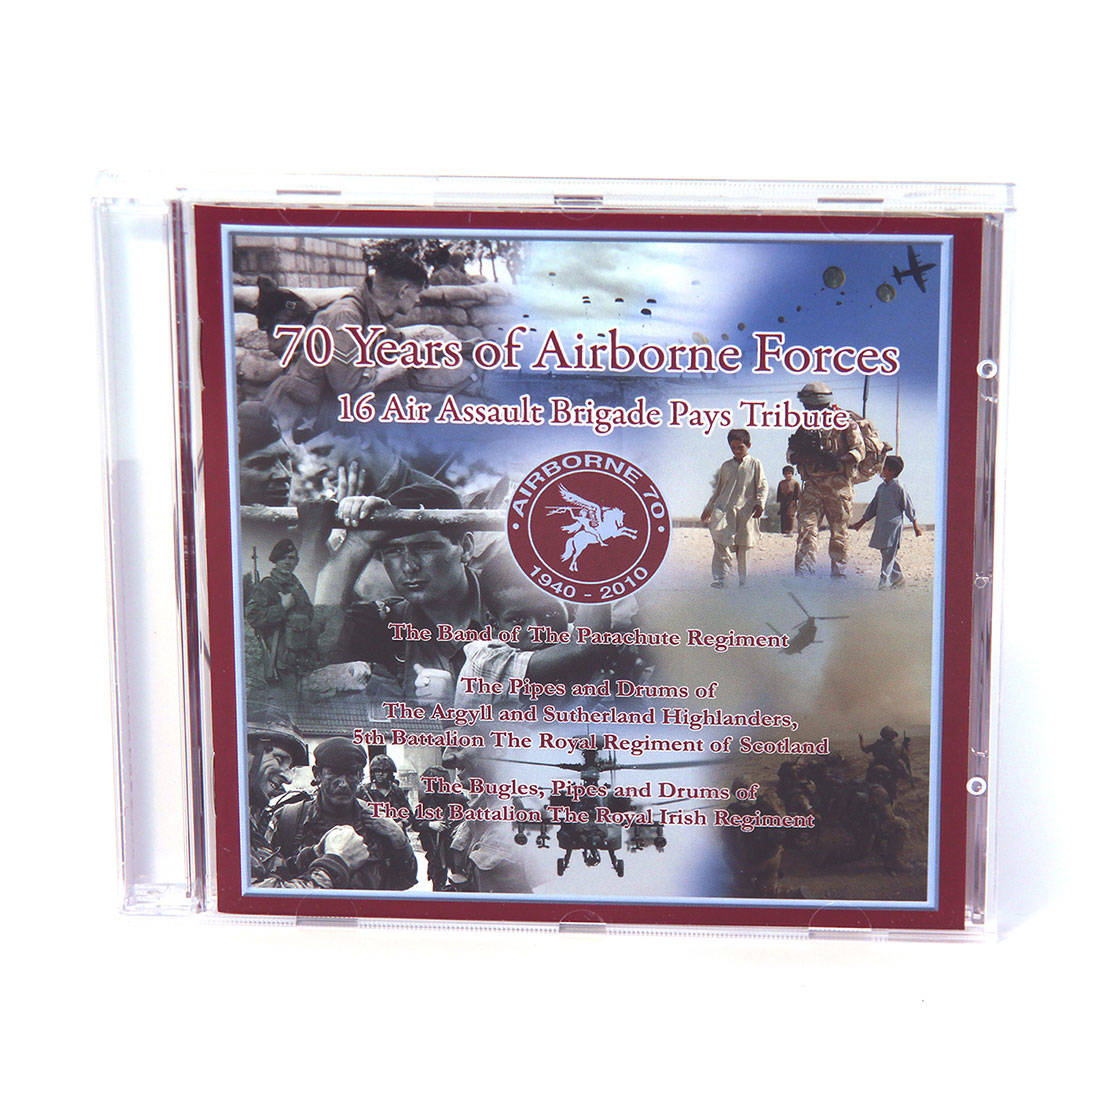 CD - 70 Years Of Airborne Forces, 16 Air Assault Brigade Pays Tribute